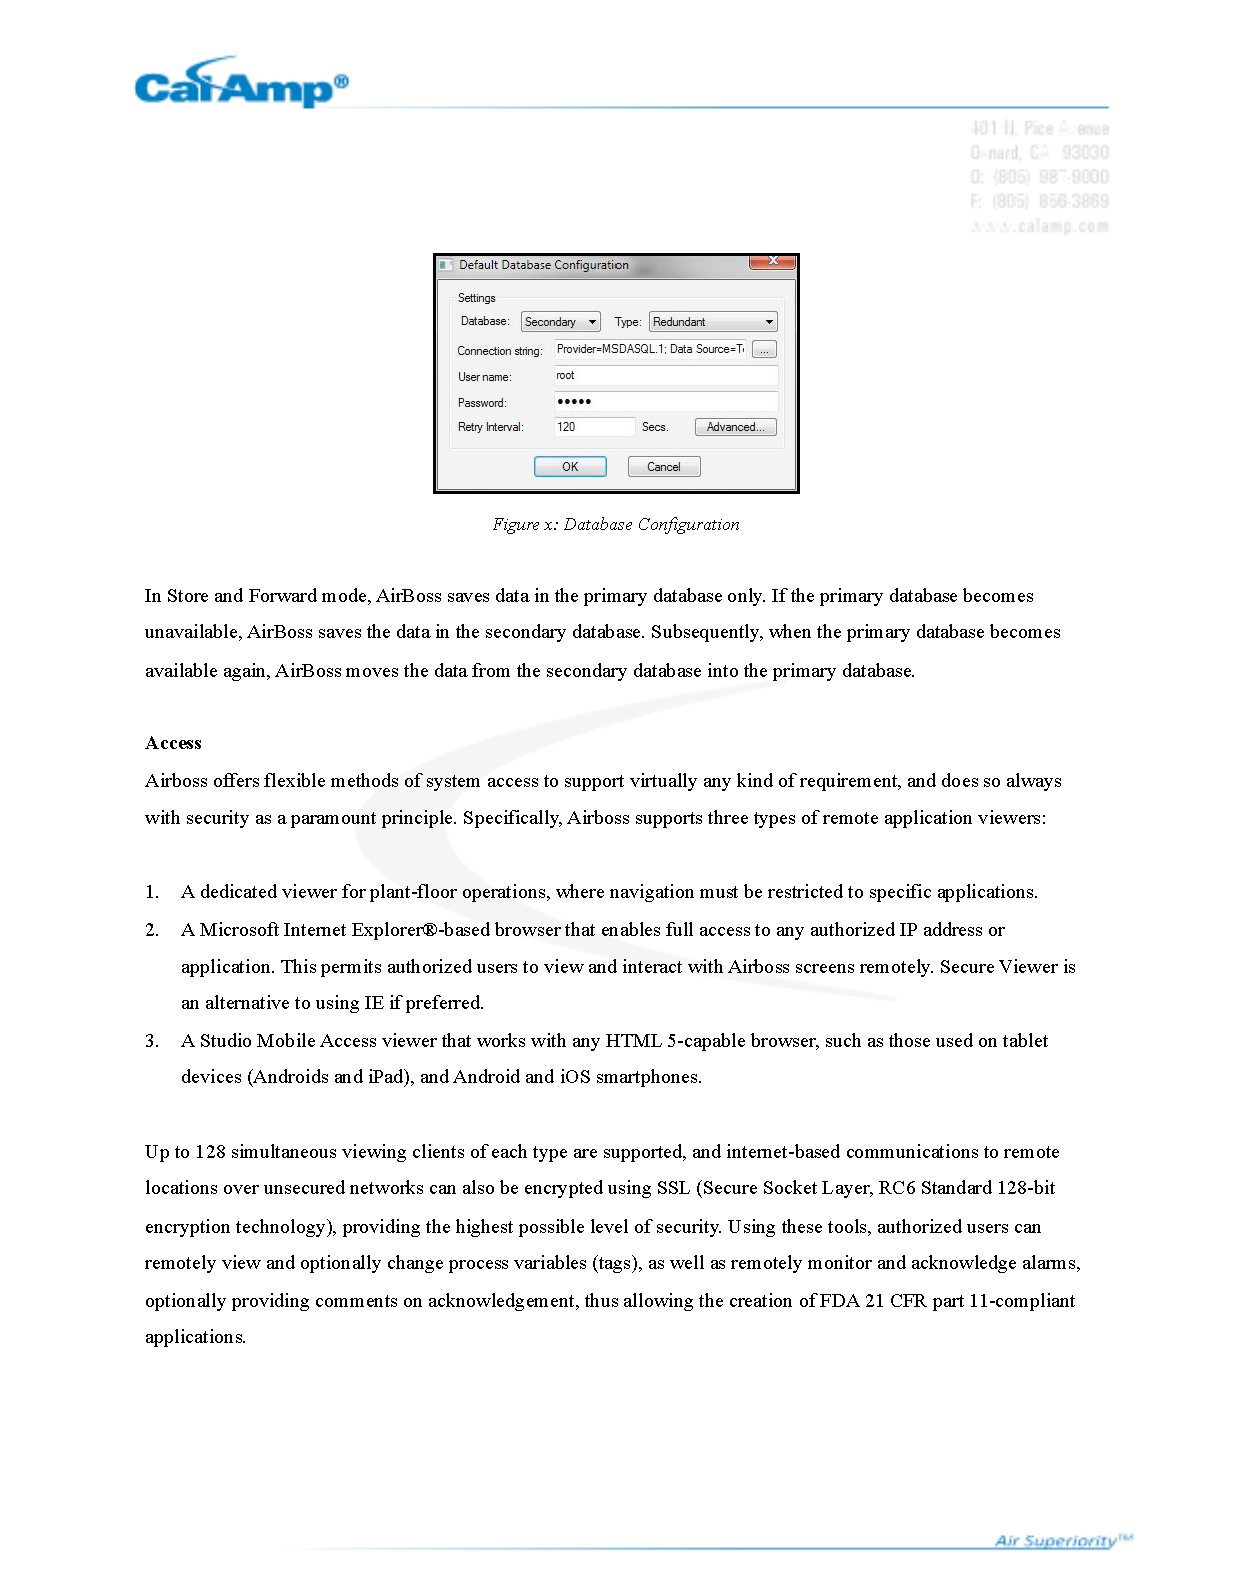 Calamp Network Management Services_Page_6.png